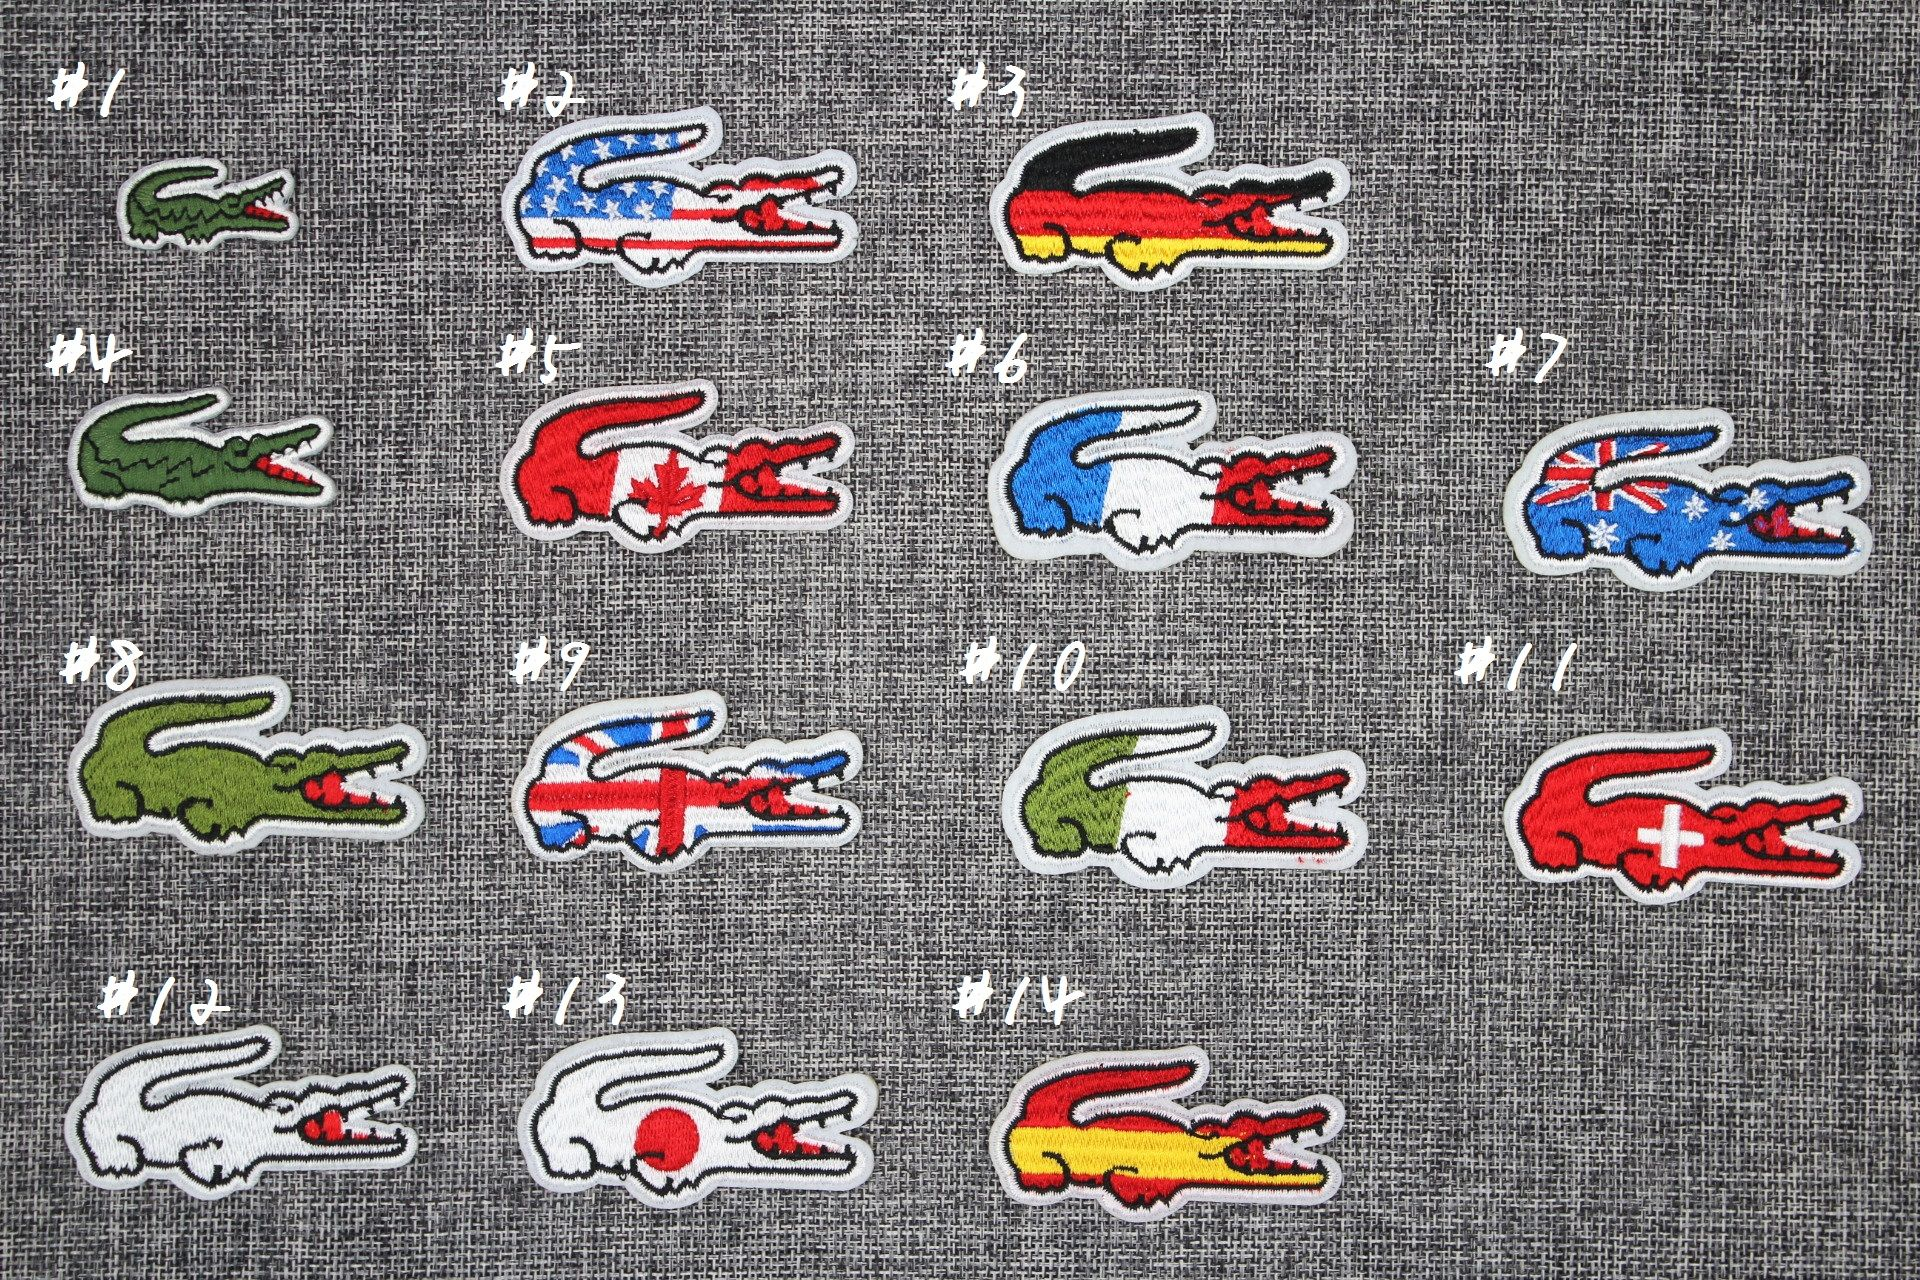 Wholesale Retail Lacoste Iron On Patch Lacoste Patch Lacoste Classic Patch Lacoste Logo Patch Lacoste Croco Classic Patches Embroidery Logo Luxury Brand Logo